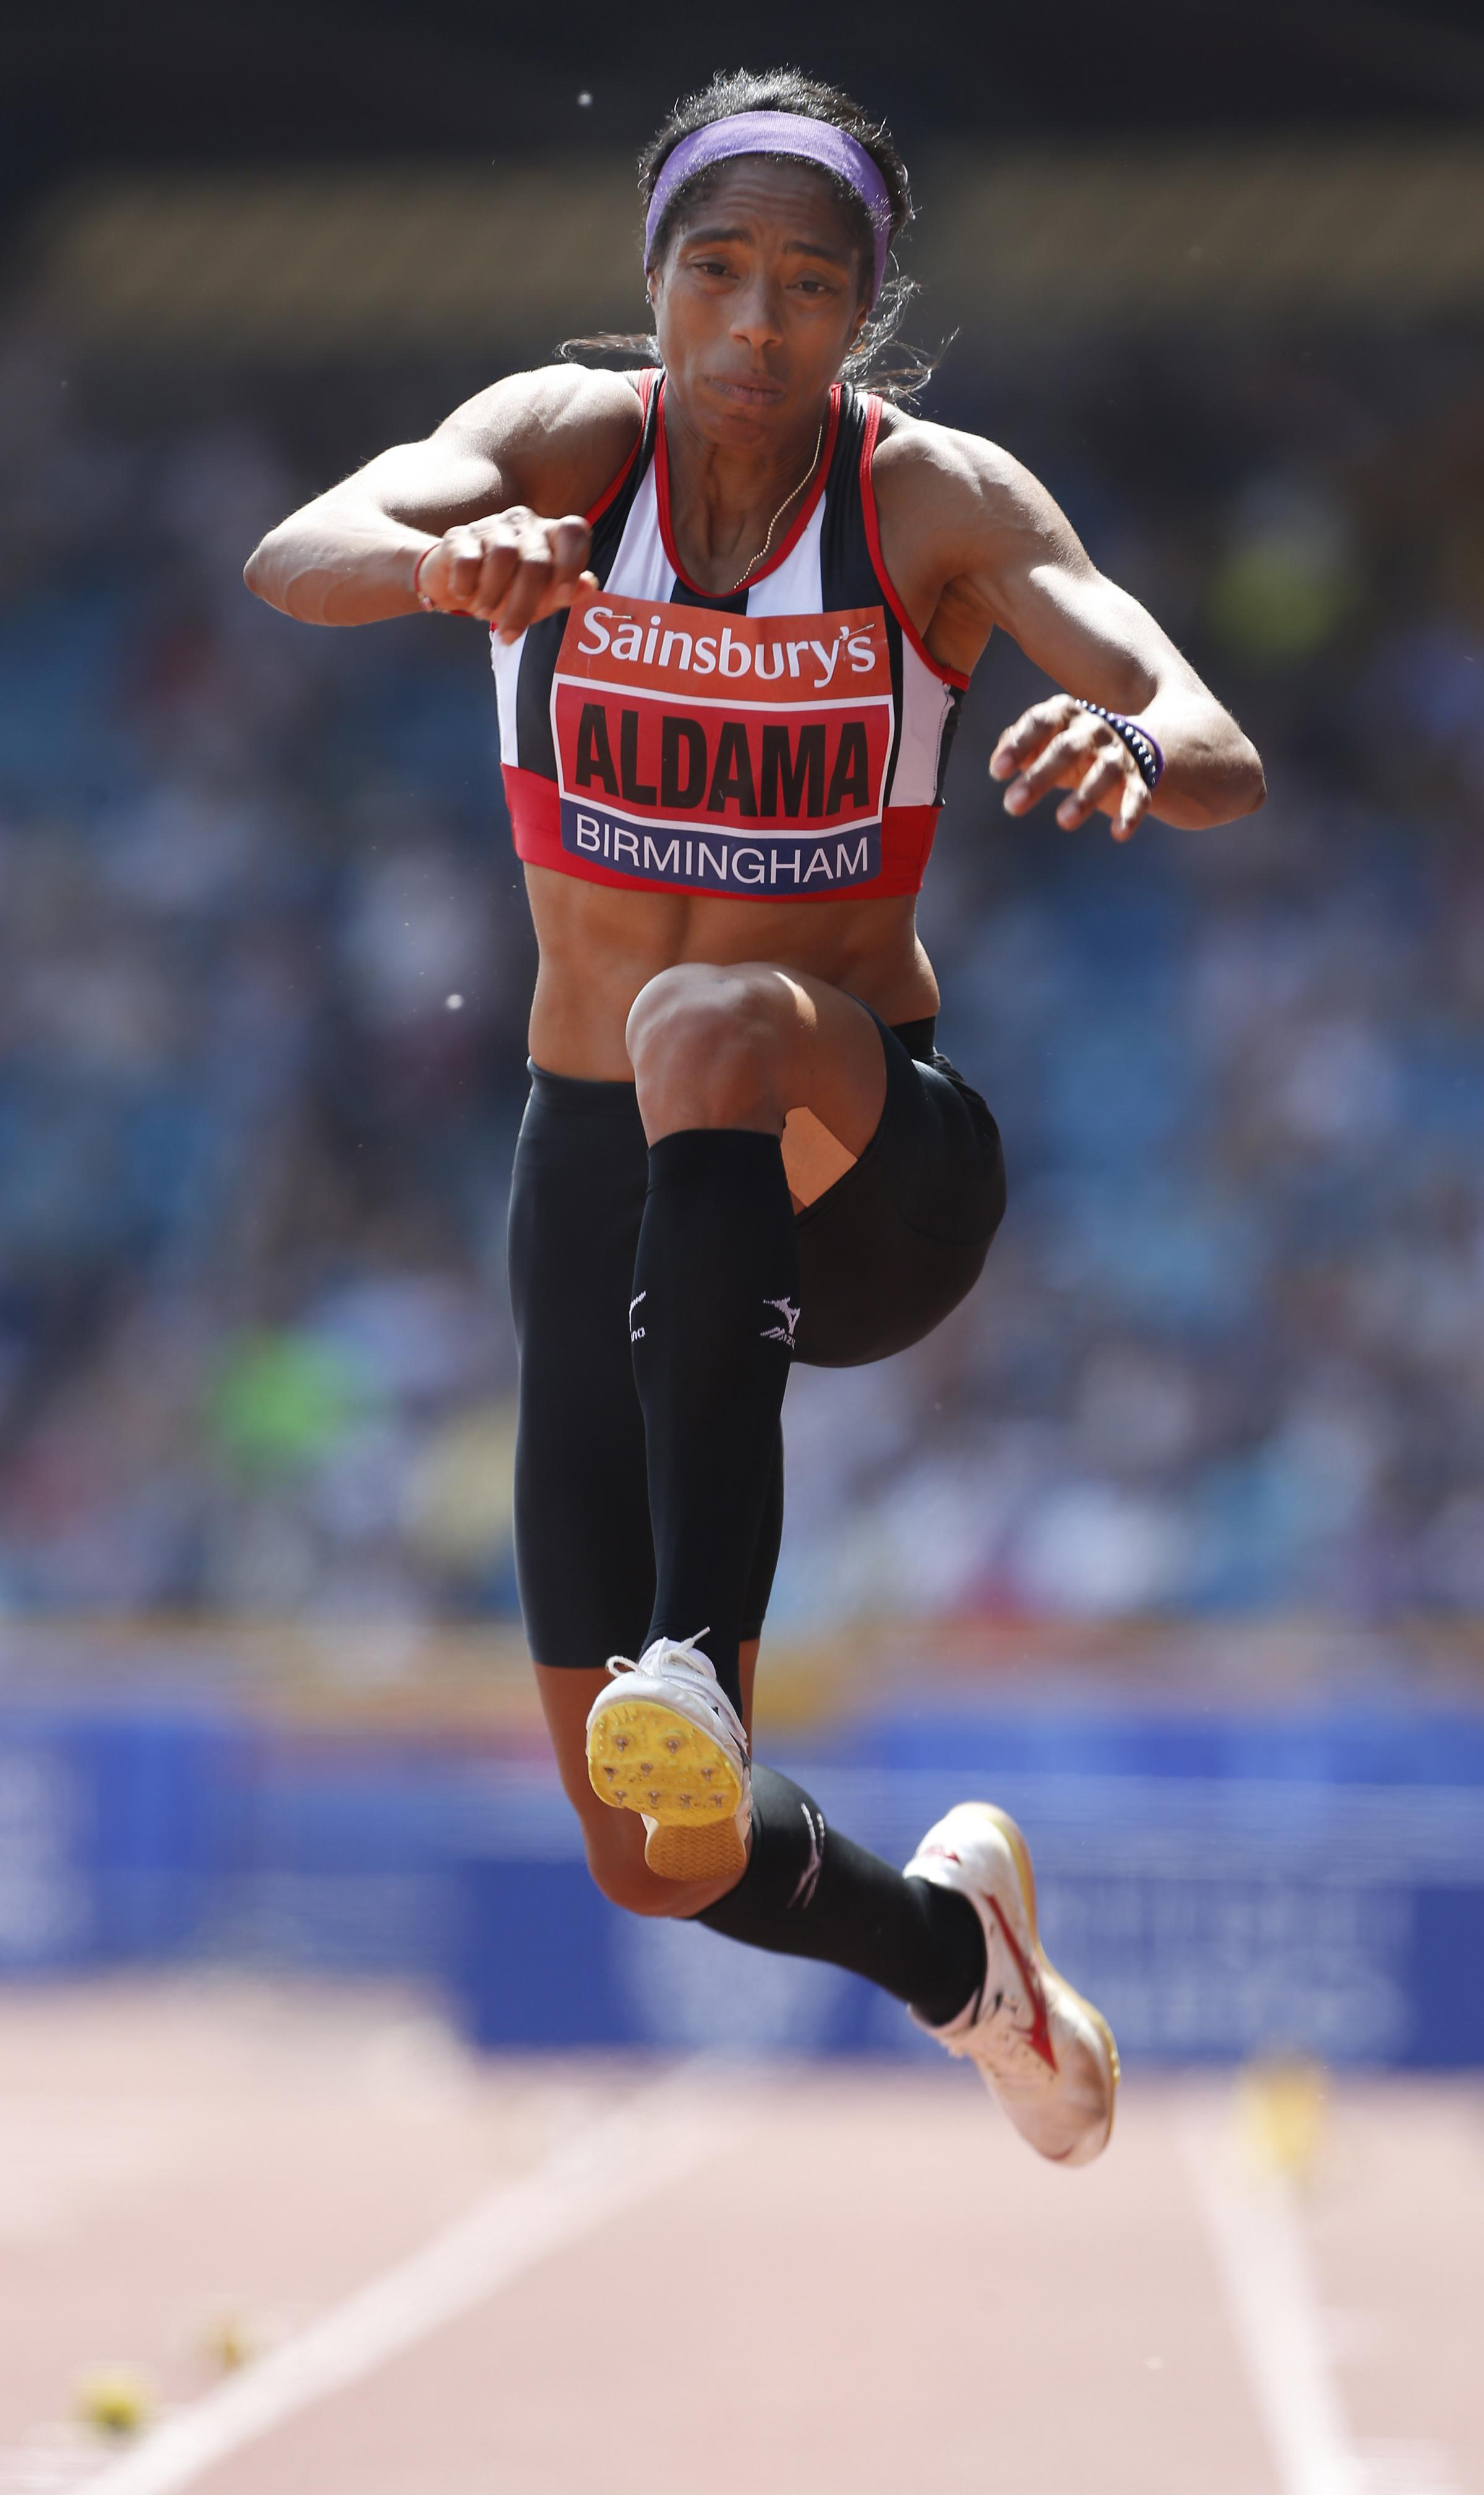 Yamile Aldama could have represented Scotland at the Commonwealth Games. Picture: Acti